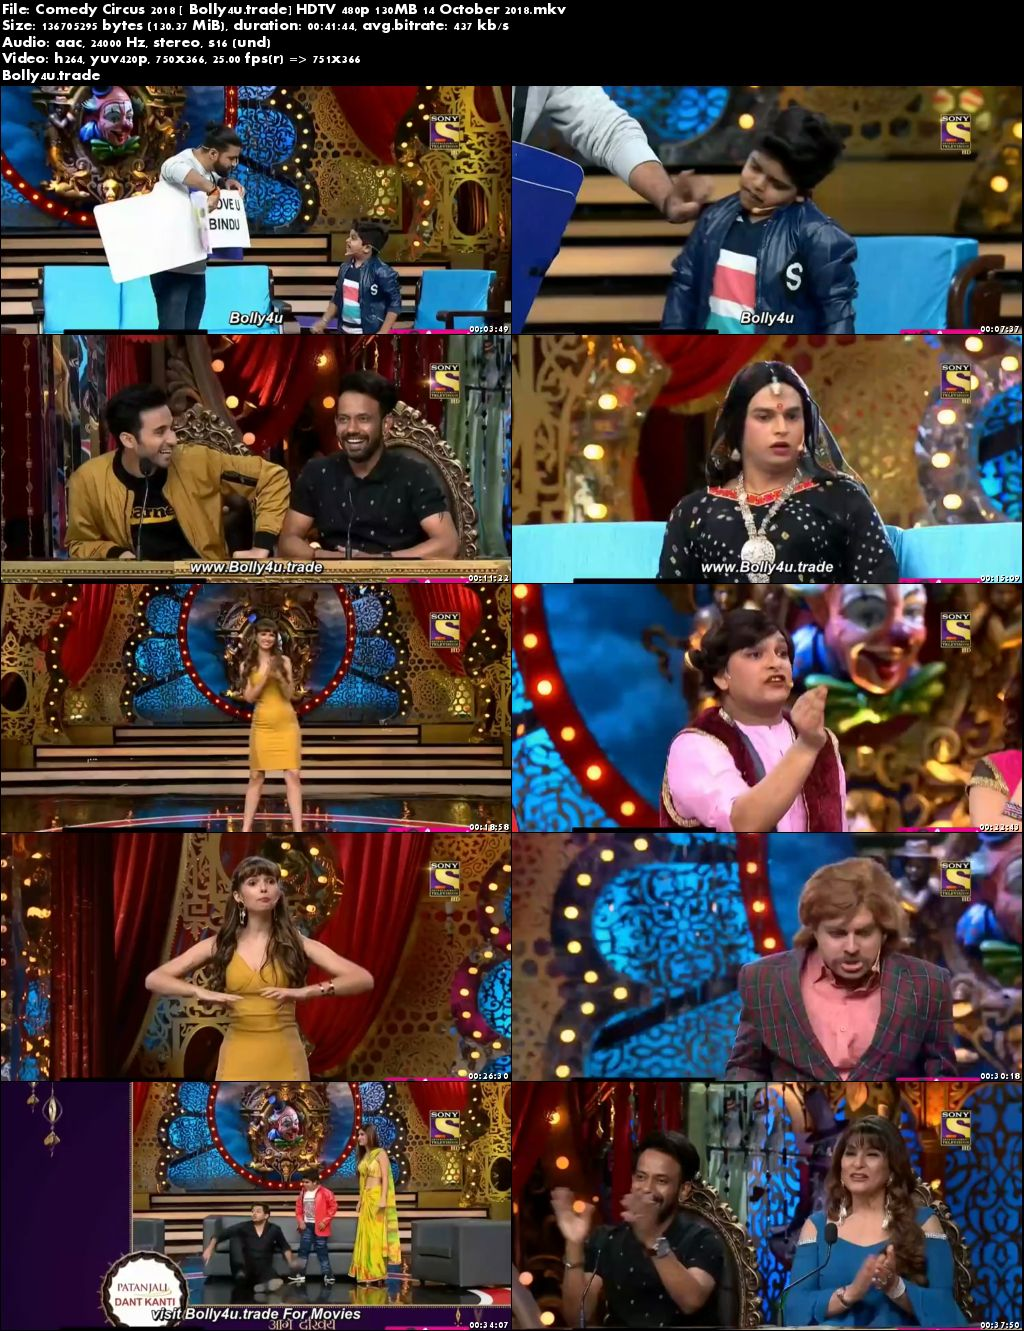 Comedy Circus 2018 HDTV 480p 130MB 14 October 2018 Download